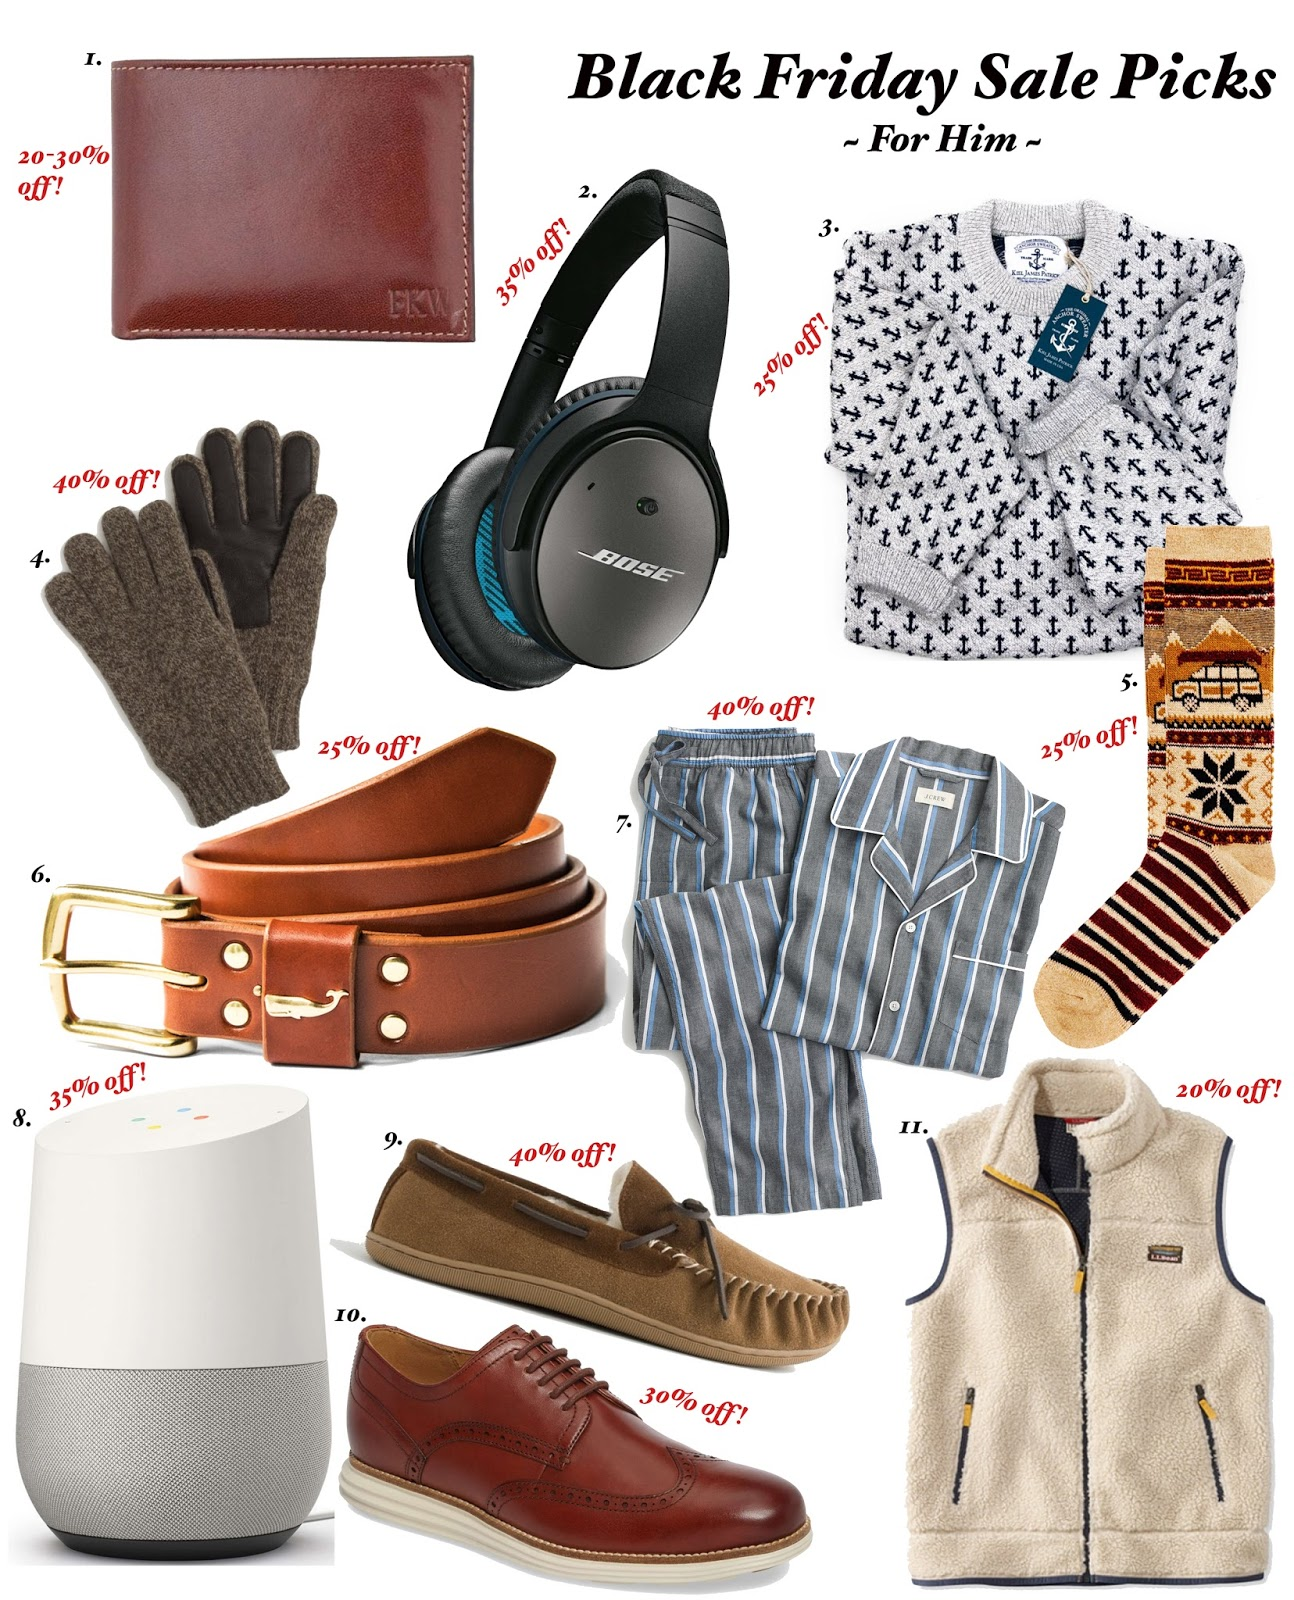 The Best of Black Friday for Him - Something Delightful Blog